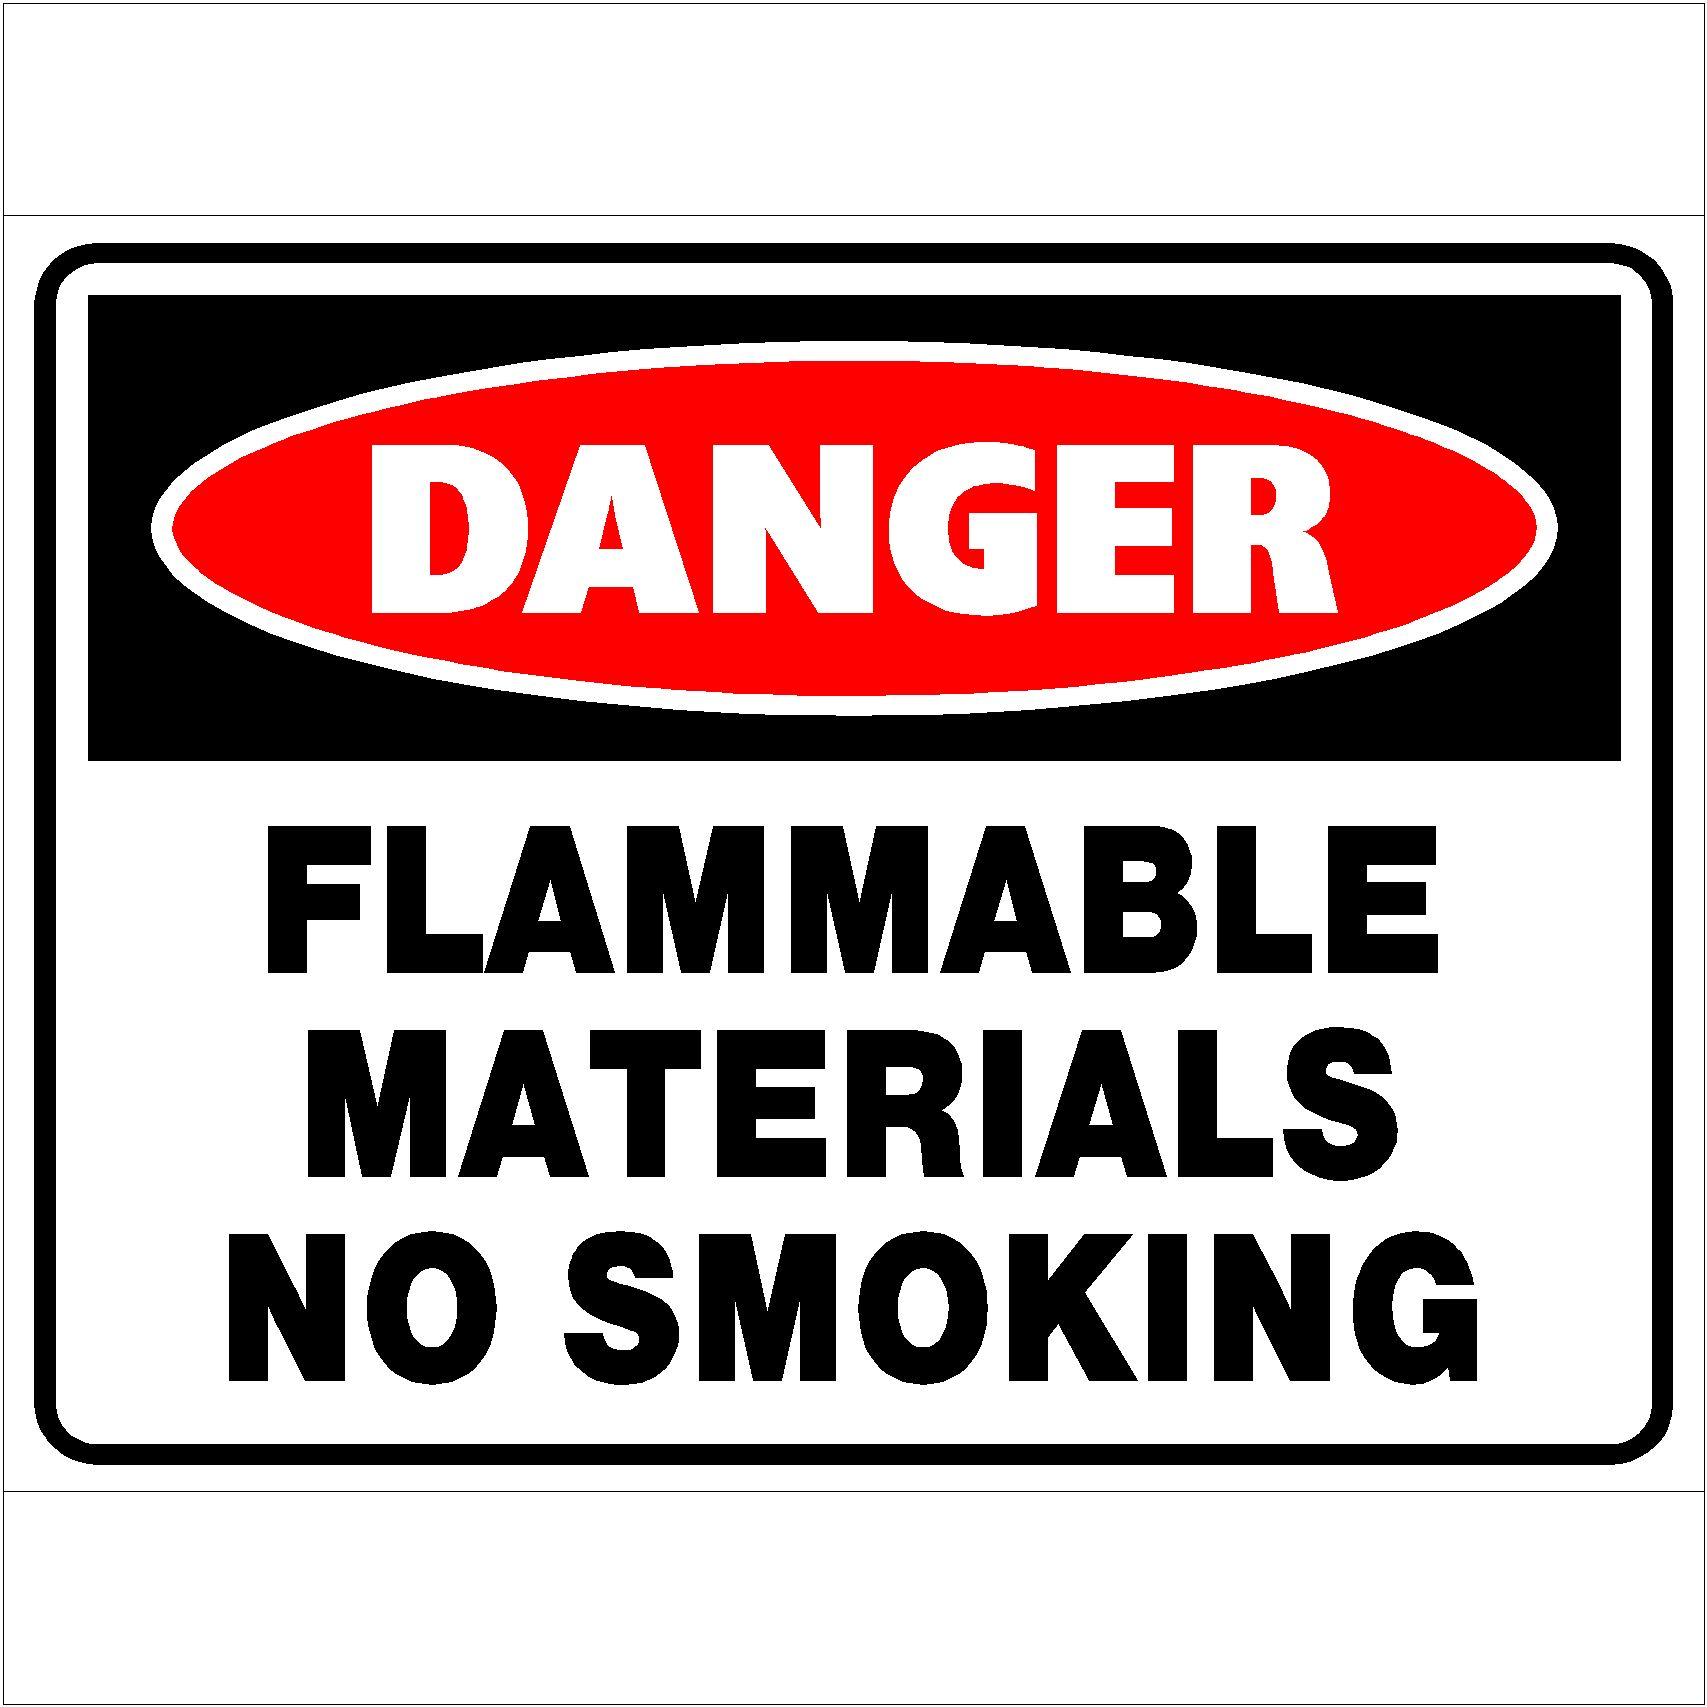 Danger Flammable Materials No Smoking